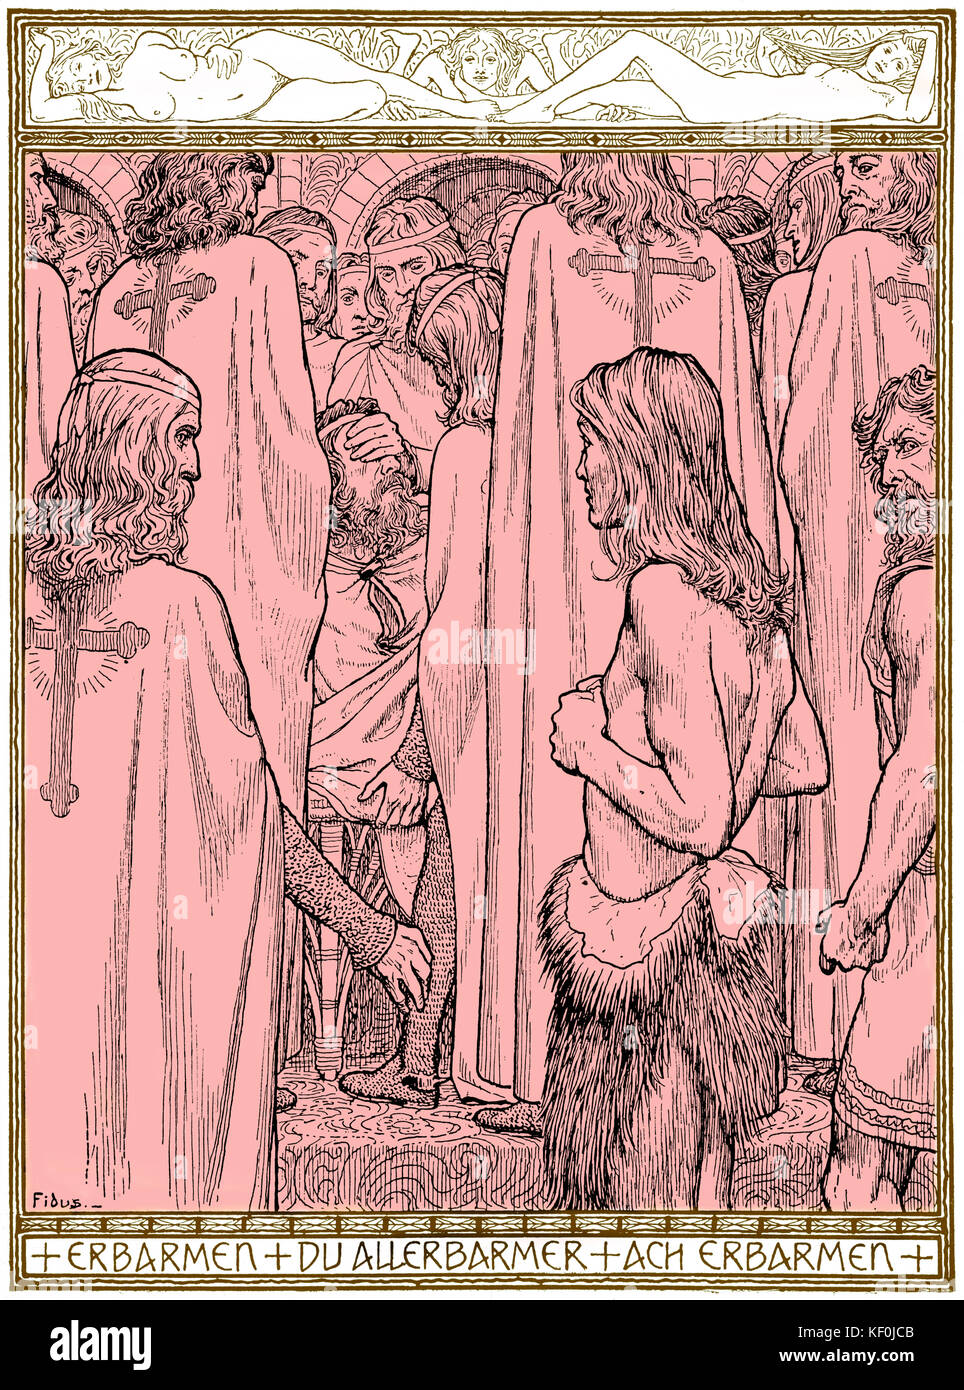 Richard Wagner 's opera  Parsifal - drawing by Fidus. Caption reads 'mercy, All-merciful, mercy'.  RW: - Stock Image